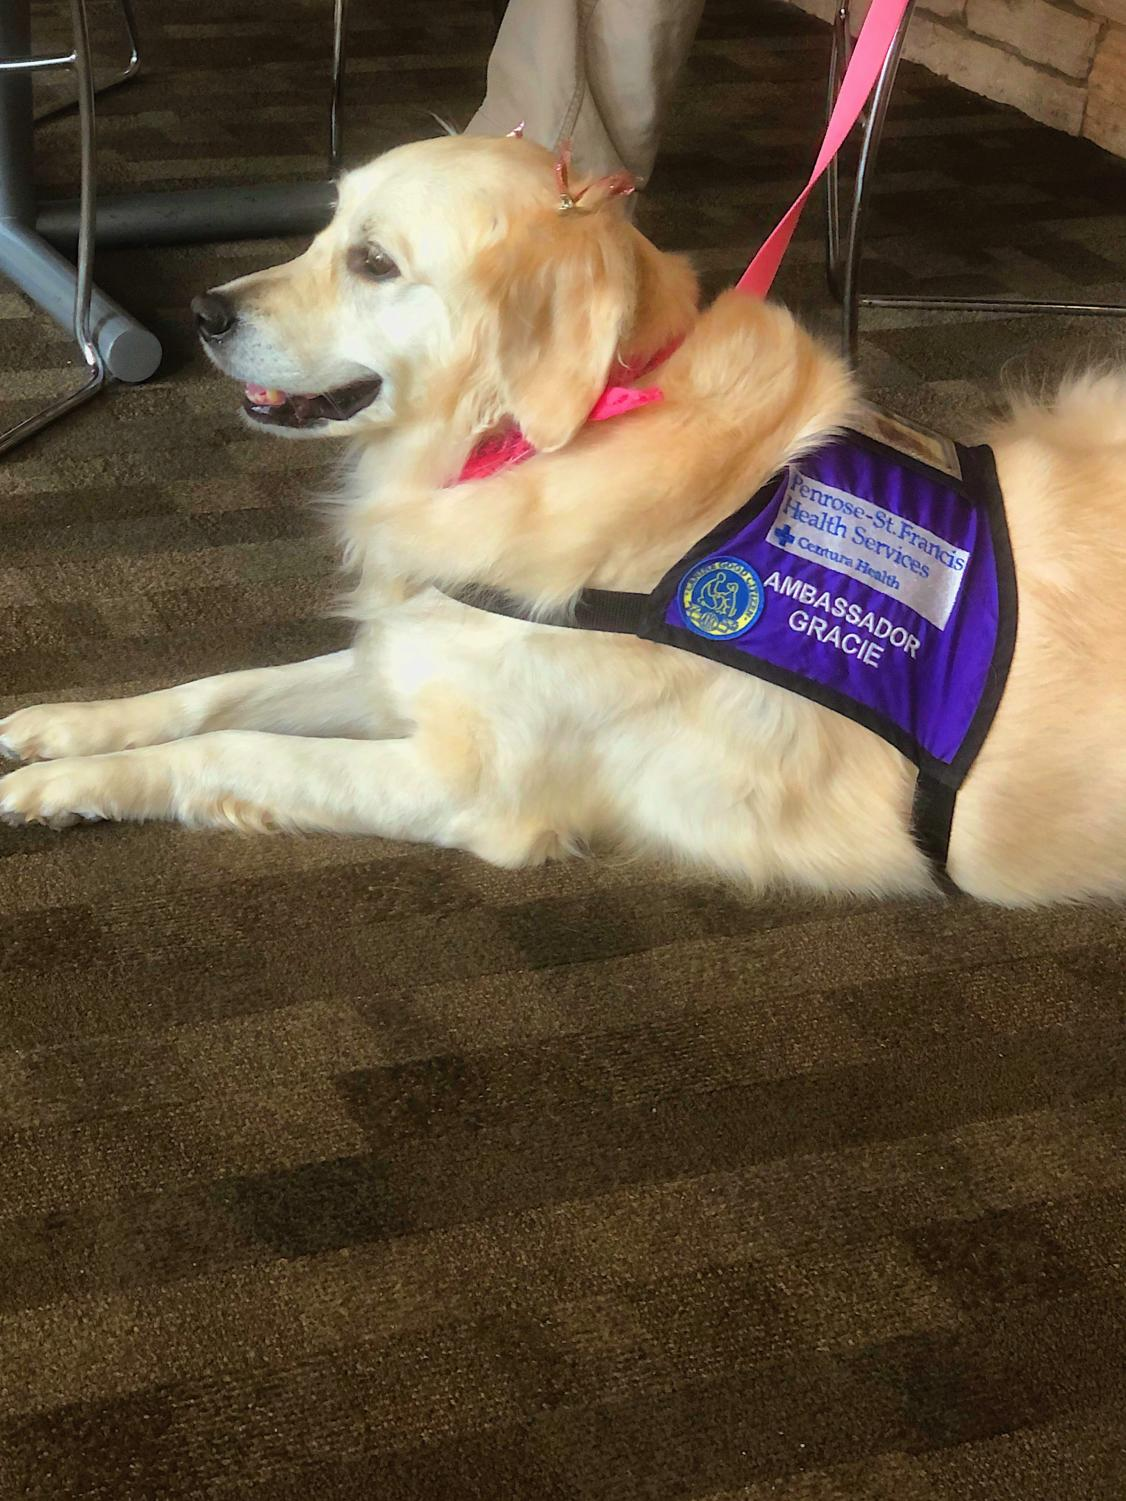 Gracie, a service dog at St. Francis Medical Center, lays quietly while waiting to meet another patient.